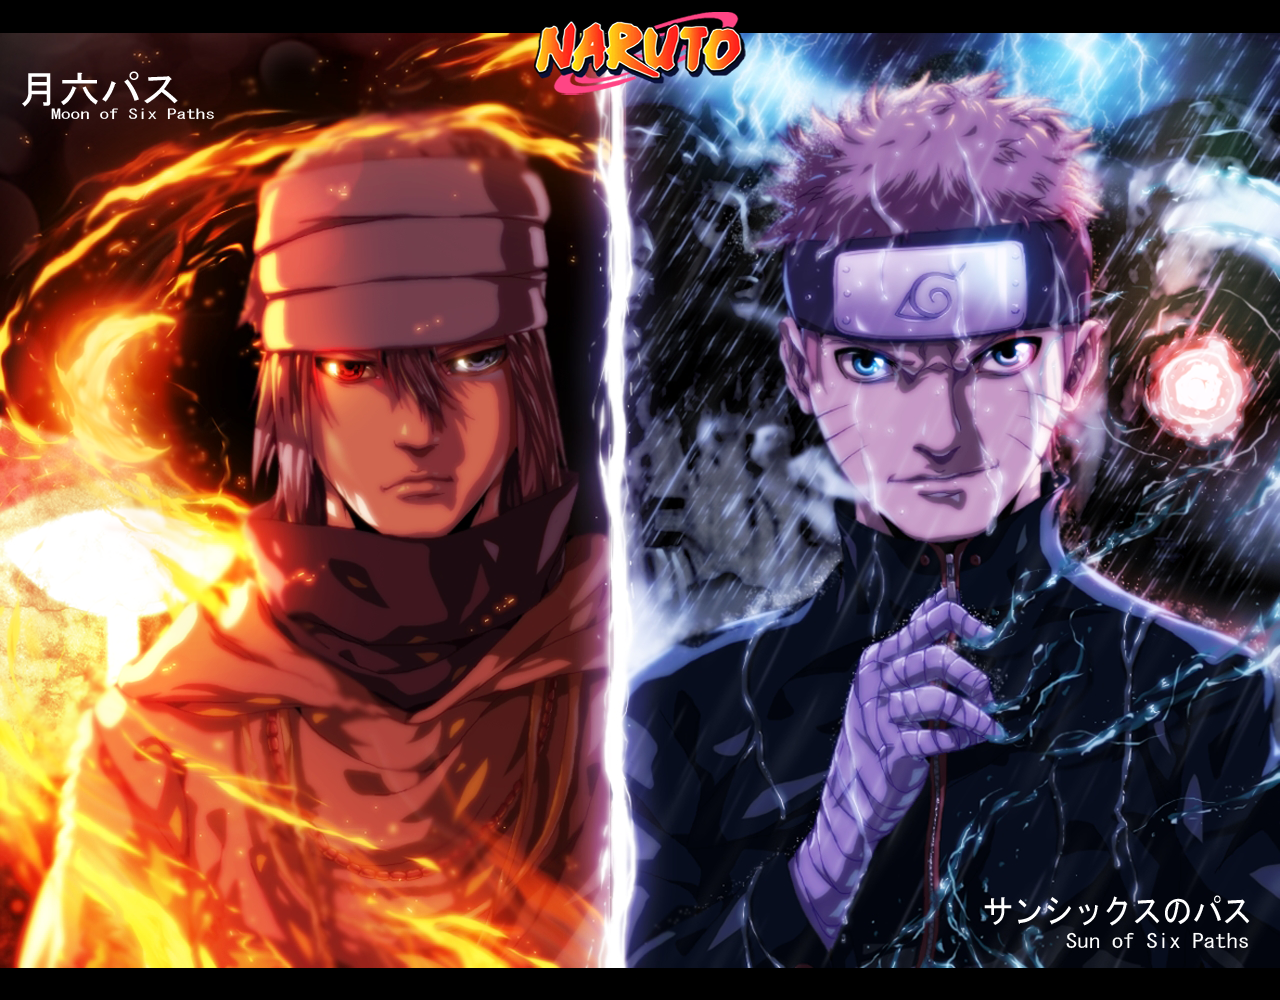 Sasuke Moon Of Six Paths And Naruto Sun Of Six Paths Hd